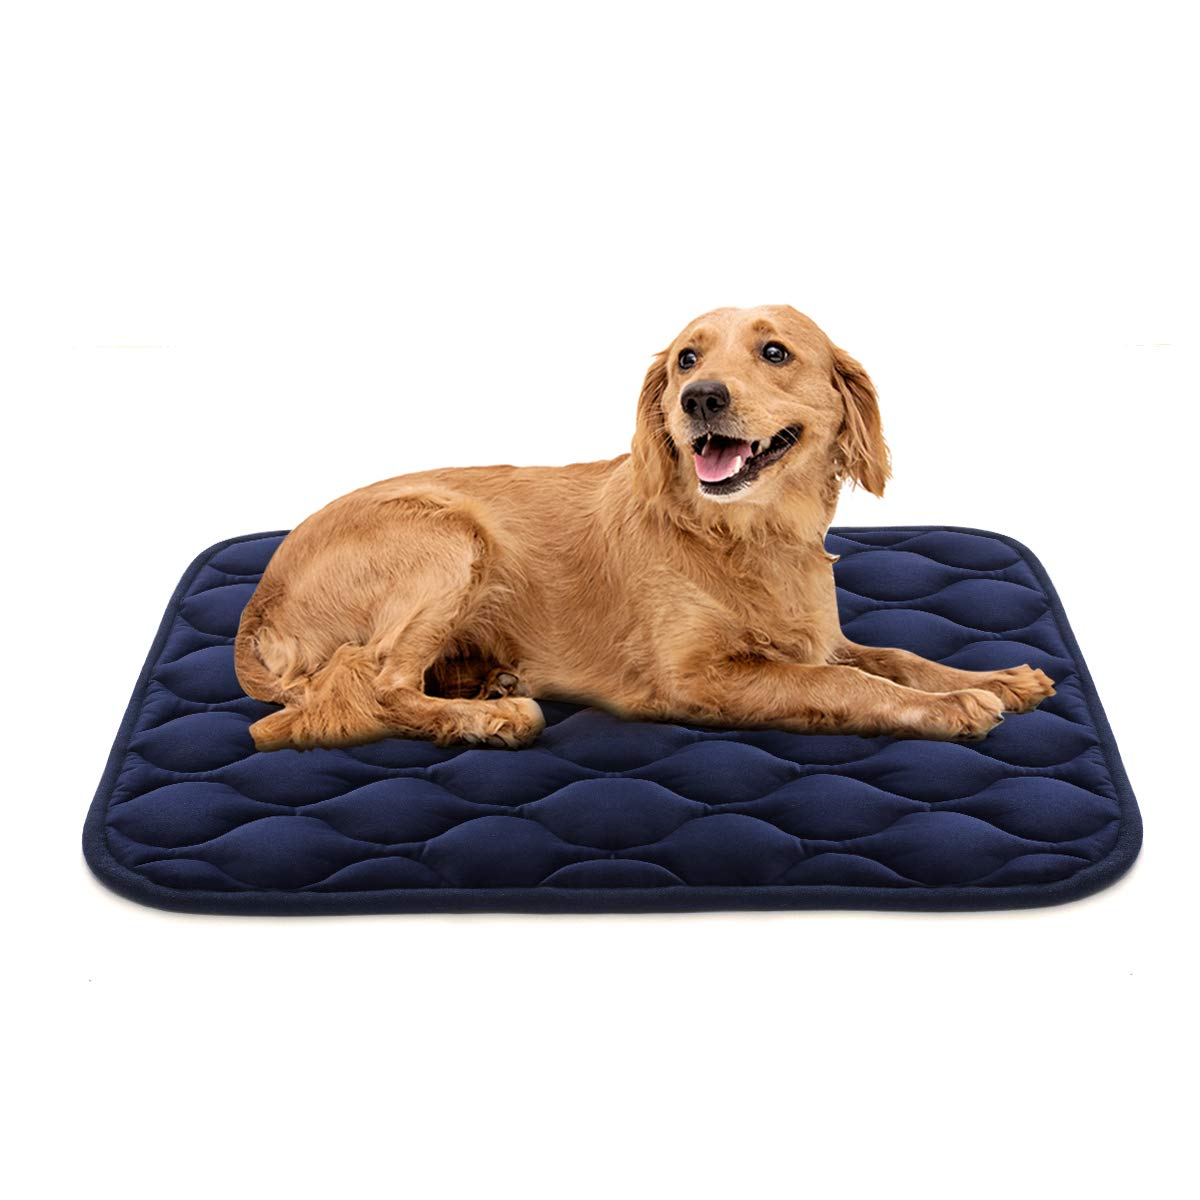 AIPERRO Dog Crate Pad Washable Dog Bed Mat Dog Mattress Pets Kennel Pad for Large Medium Small Dogs and Cats, 42'' x 27''